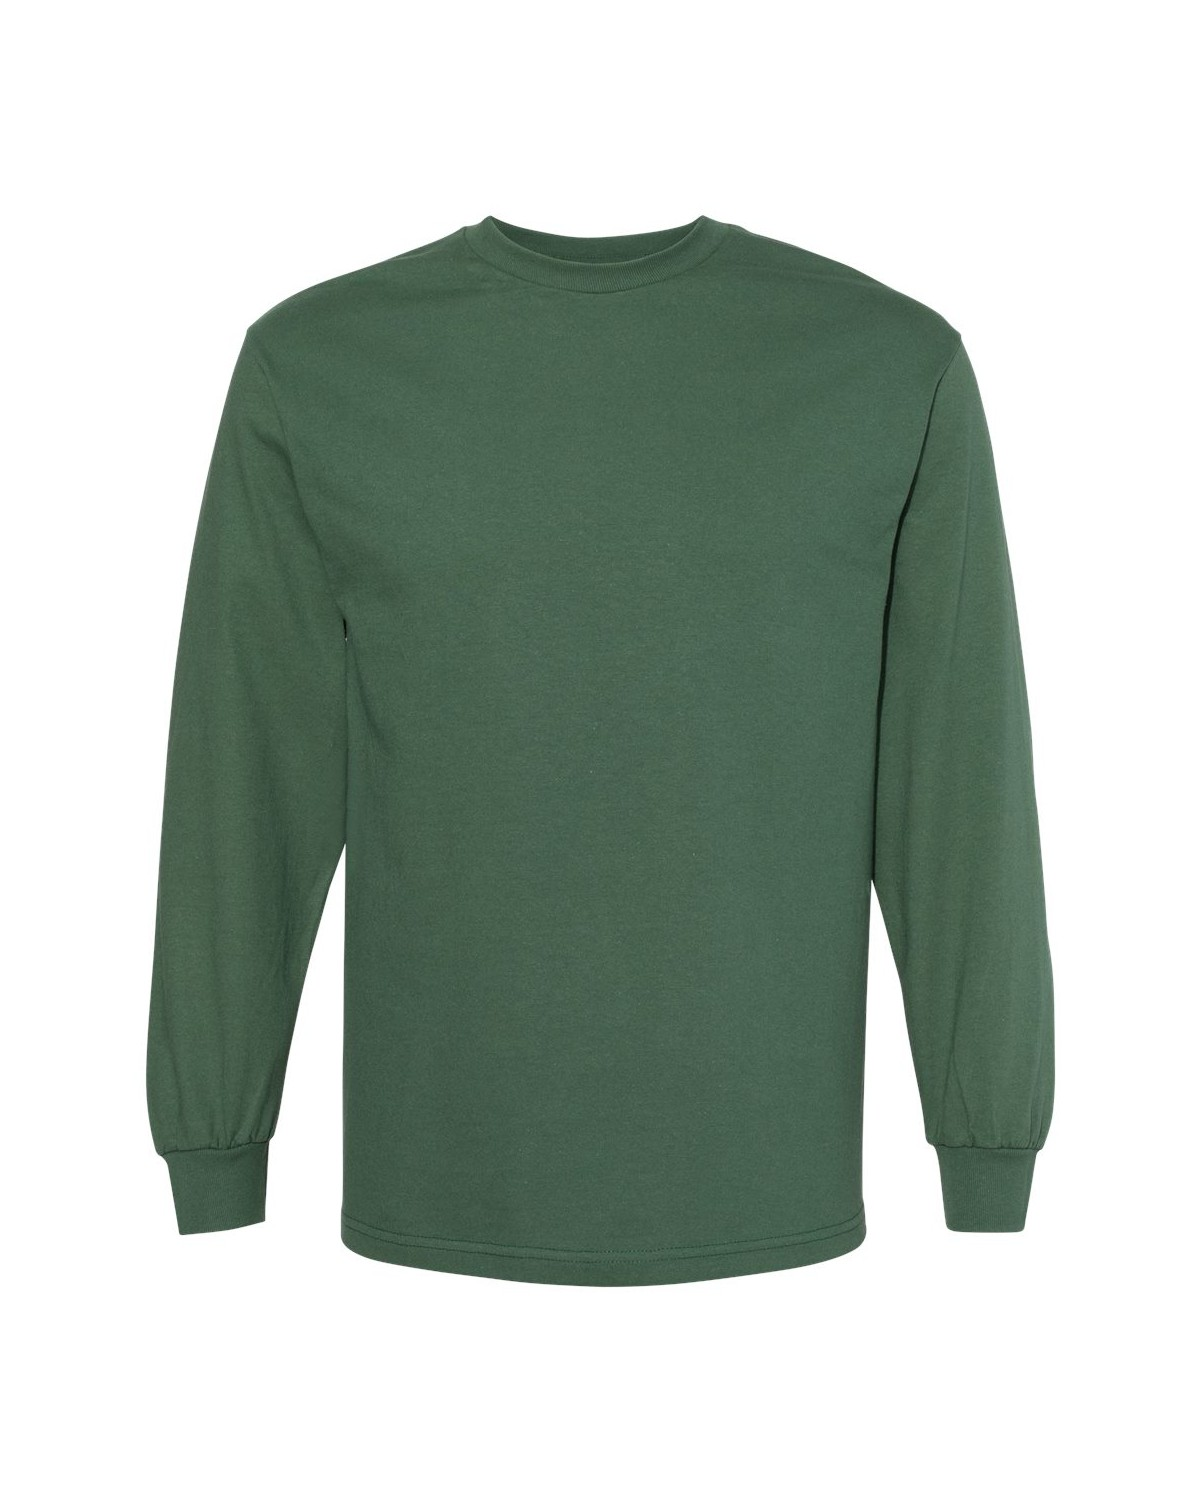 1304 Alstyle FOREST GREEN